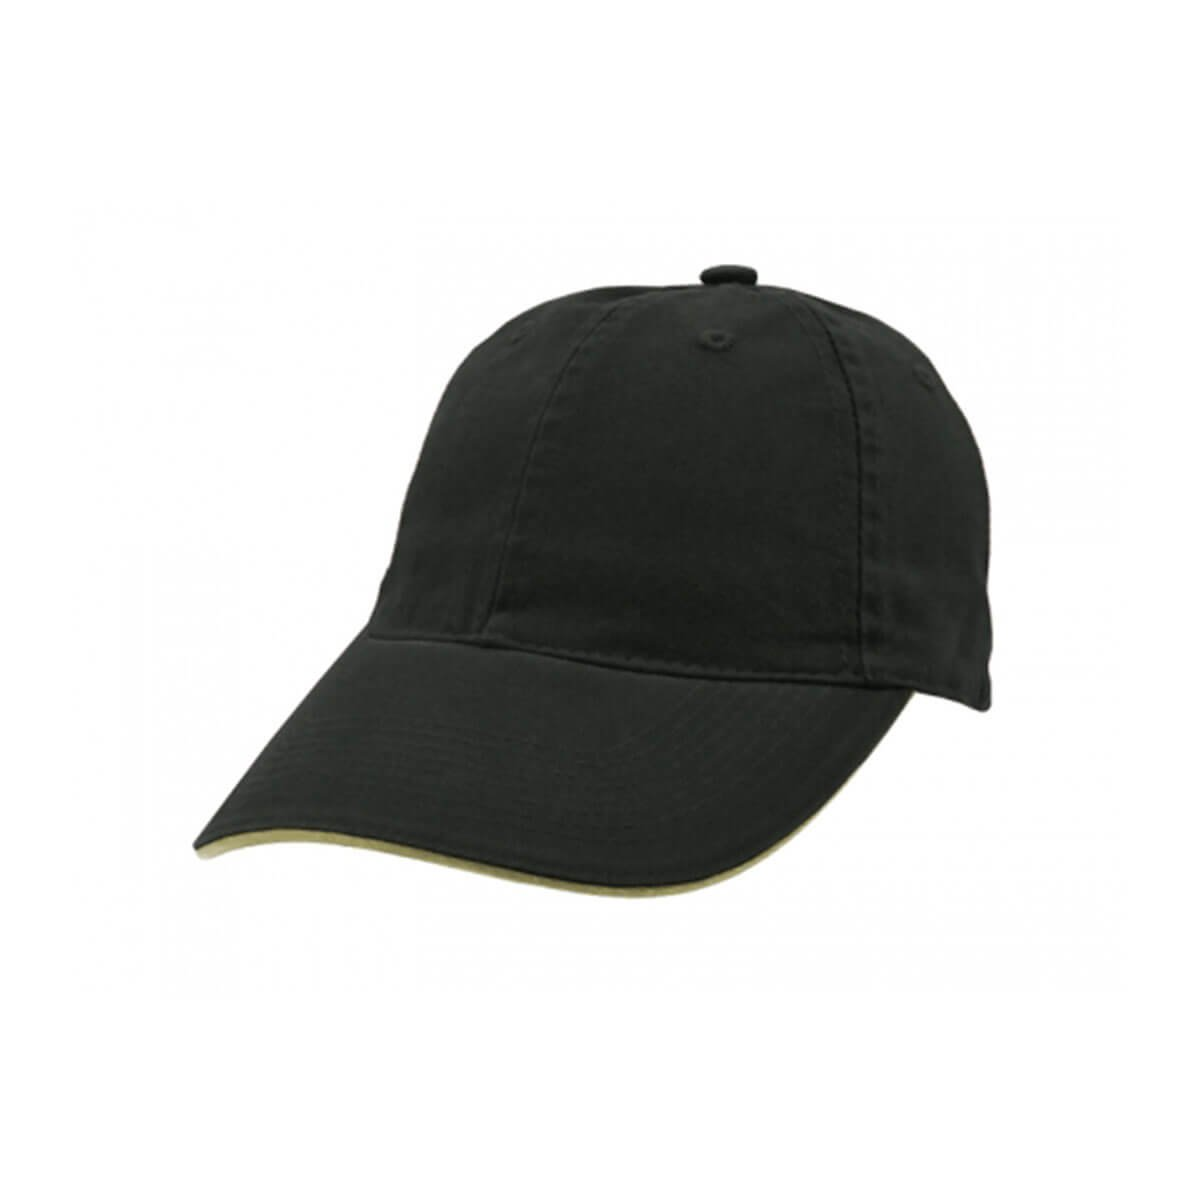 Enzyme Washed Cap with Sandwich-Black / Khaki